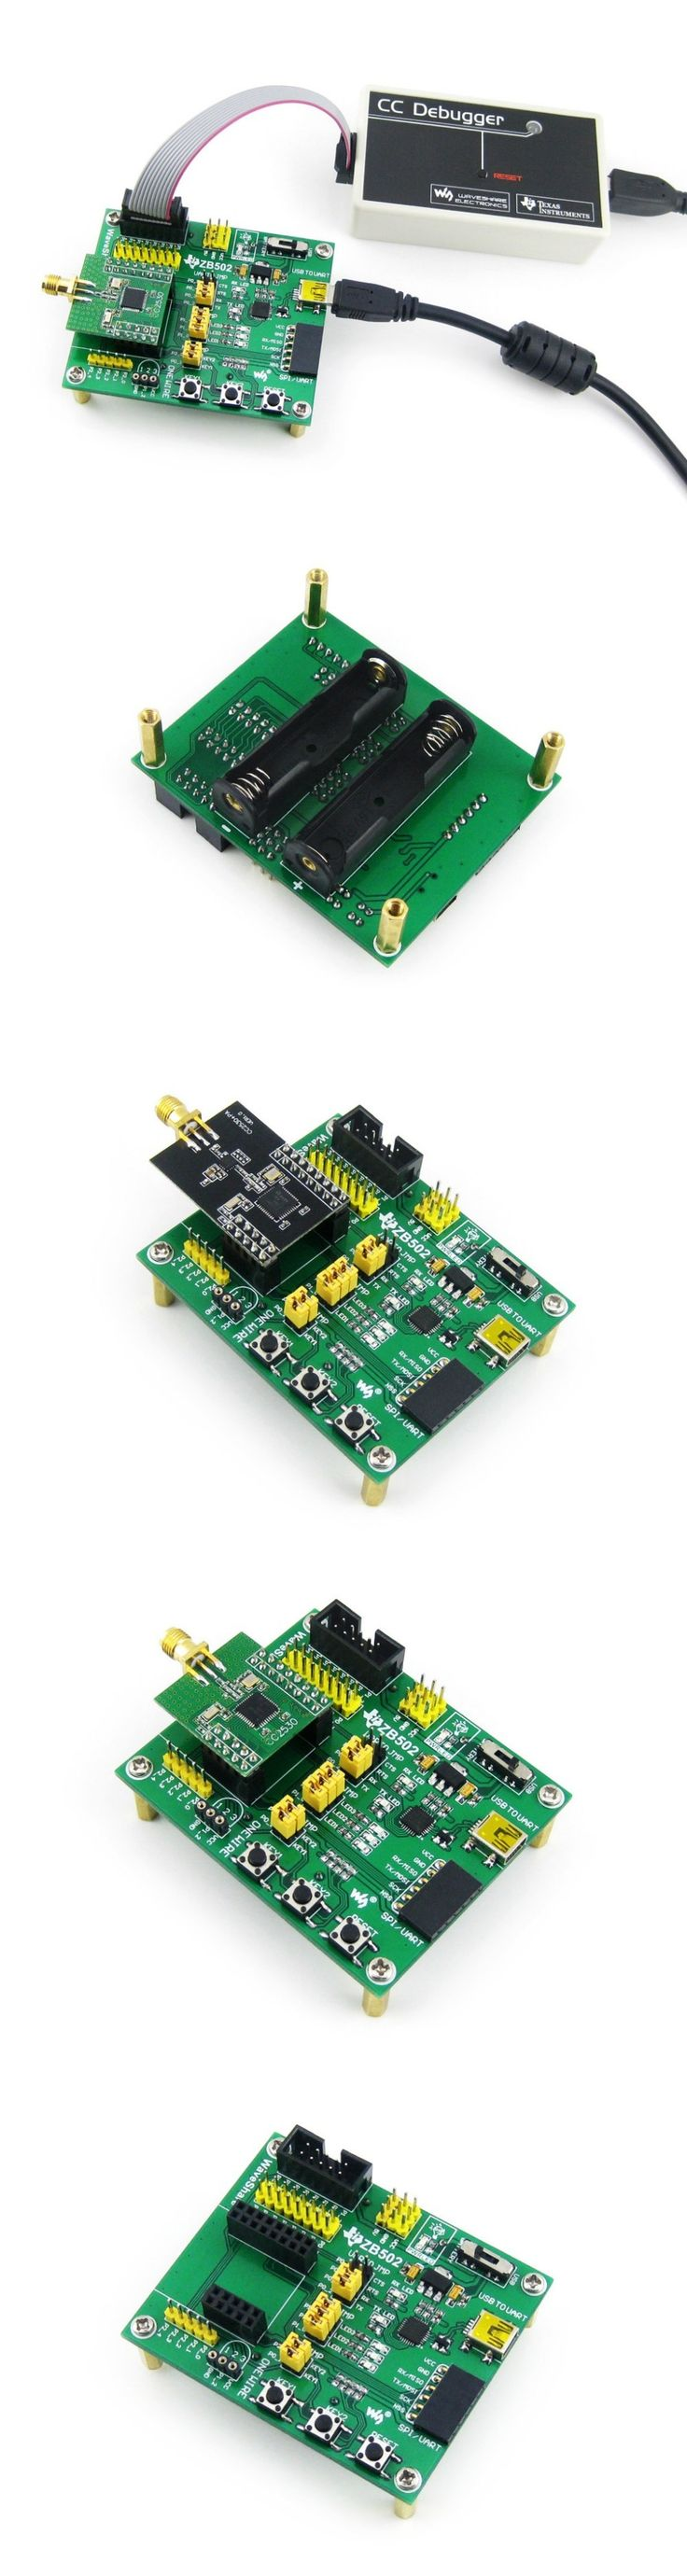 ZB502 ZigBee Wireless Expansion Motherboard for Connecting Zigbee Module CC2530 &Accessories with CP2102 on Board  for Debugging